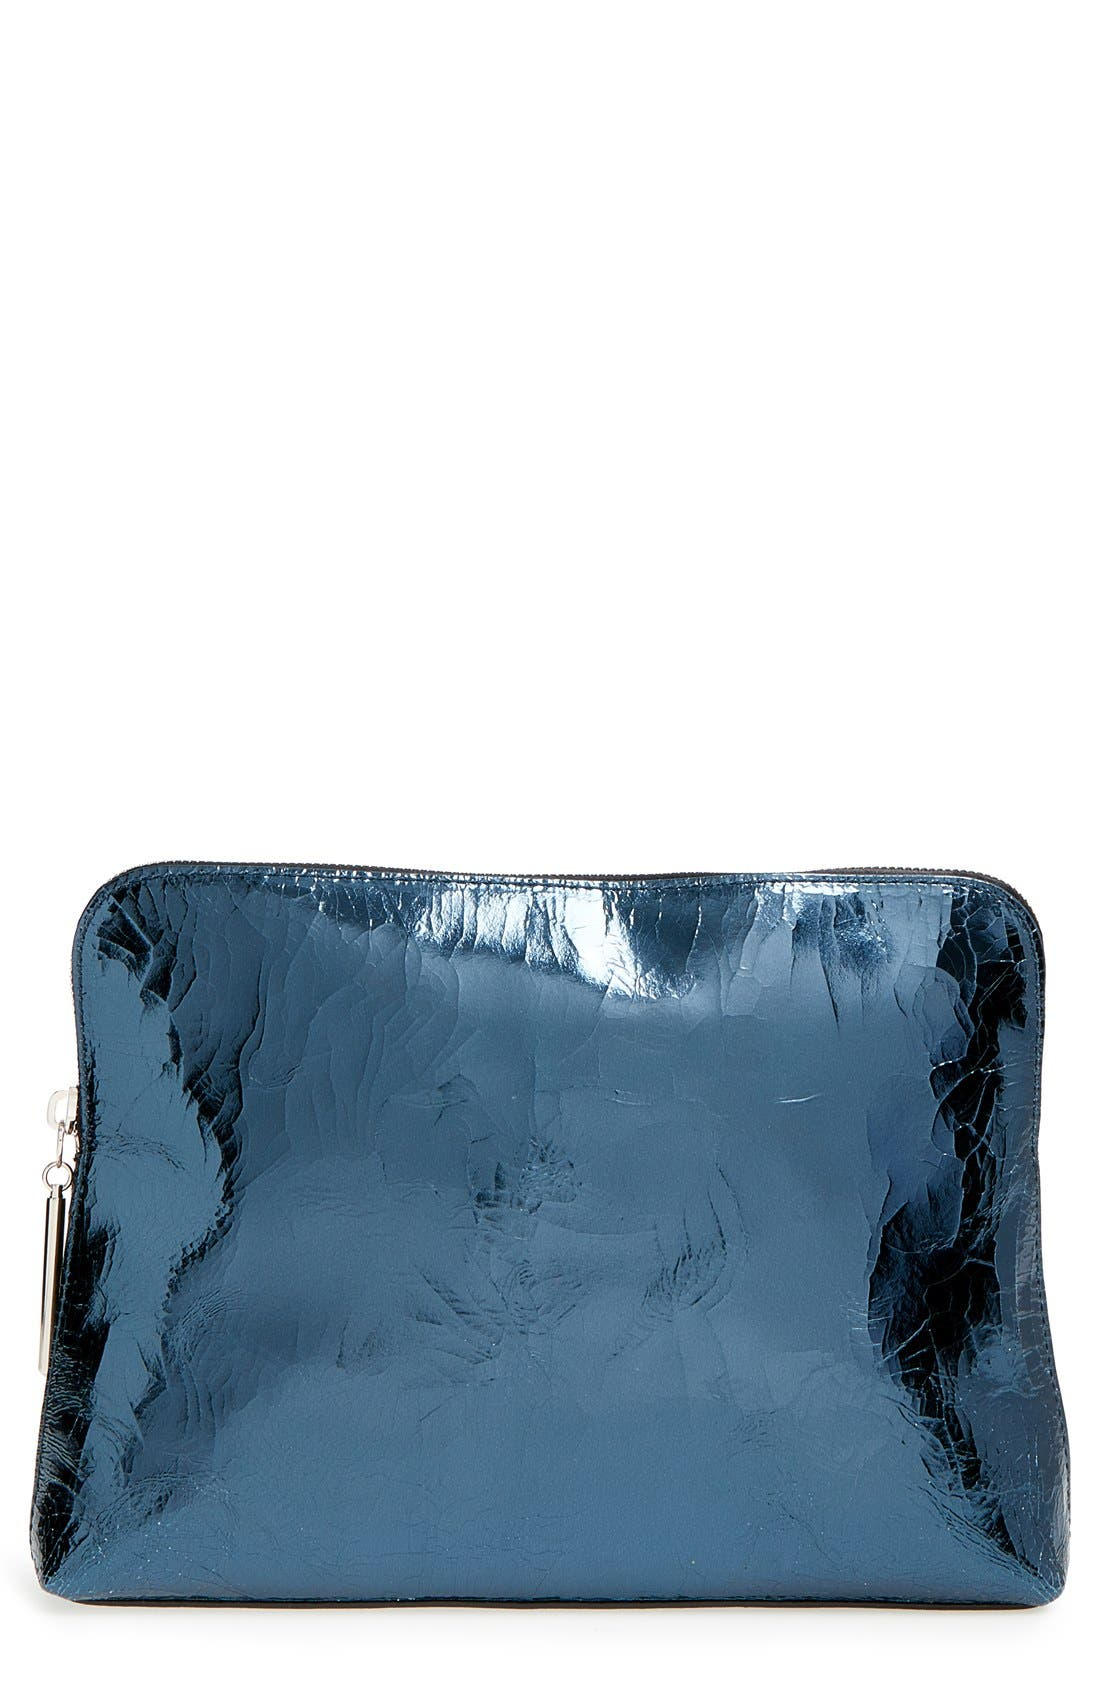 'Medium 31 Minute' Metallic Leather Pouch,                             Main thumbnail 1, color,                             400